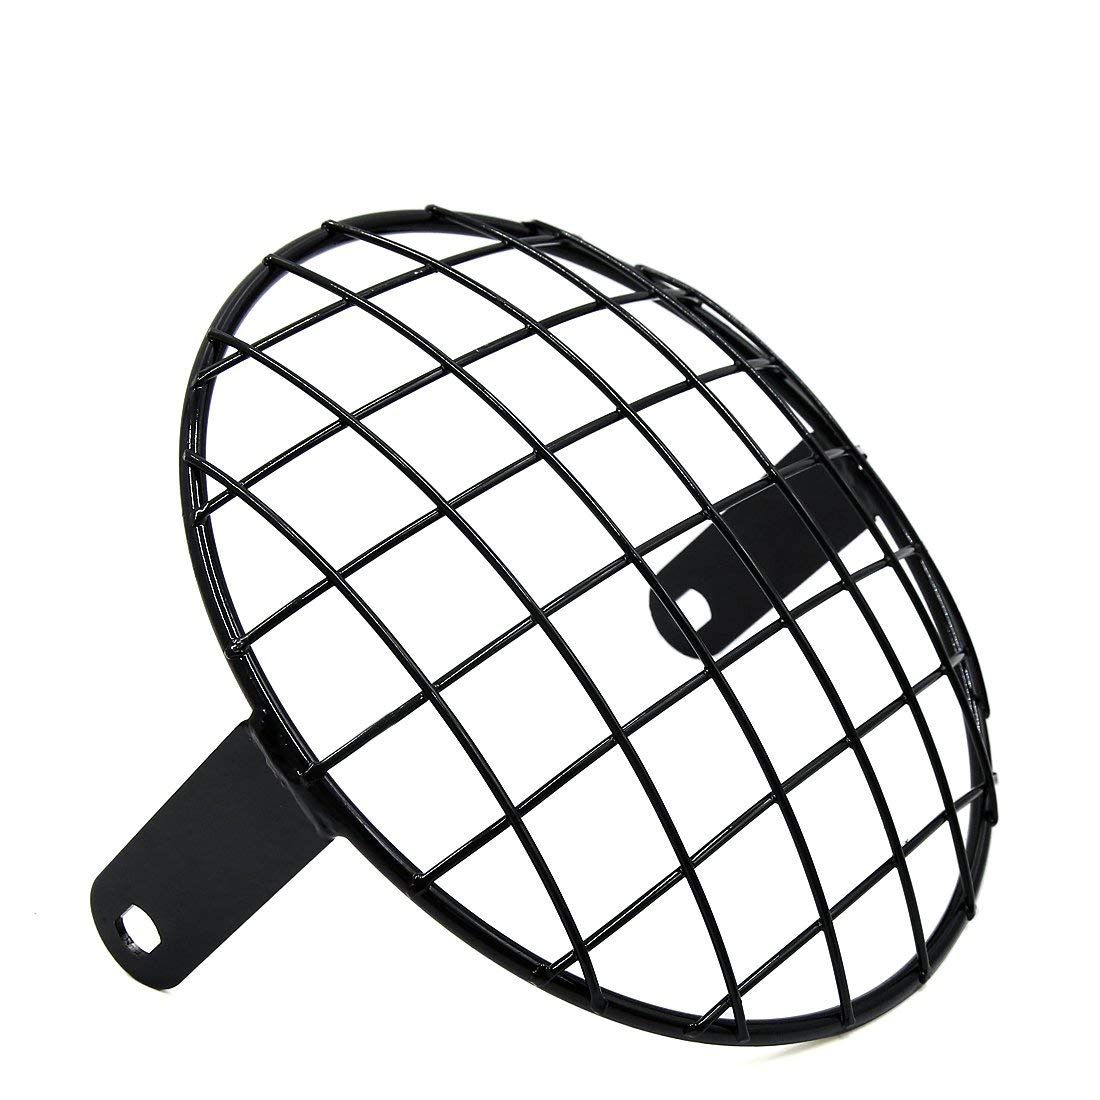 uxcell 7 8inch Black Metal Headlight Mesh Grill Motorcycle Headlamp Grid Cover for Harley